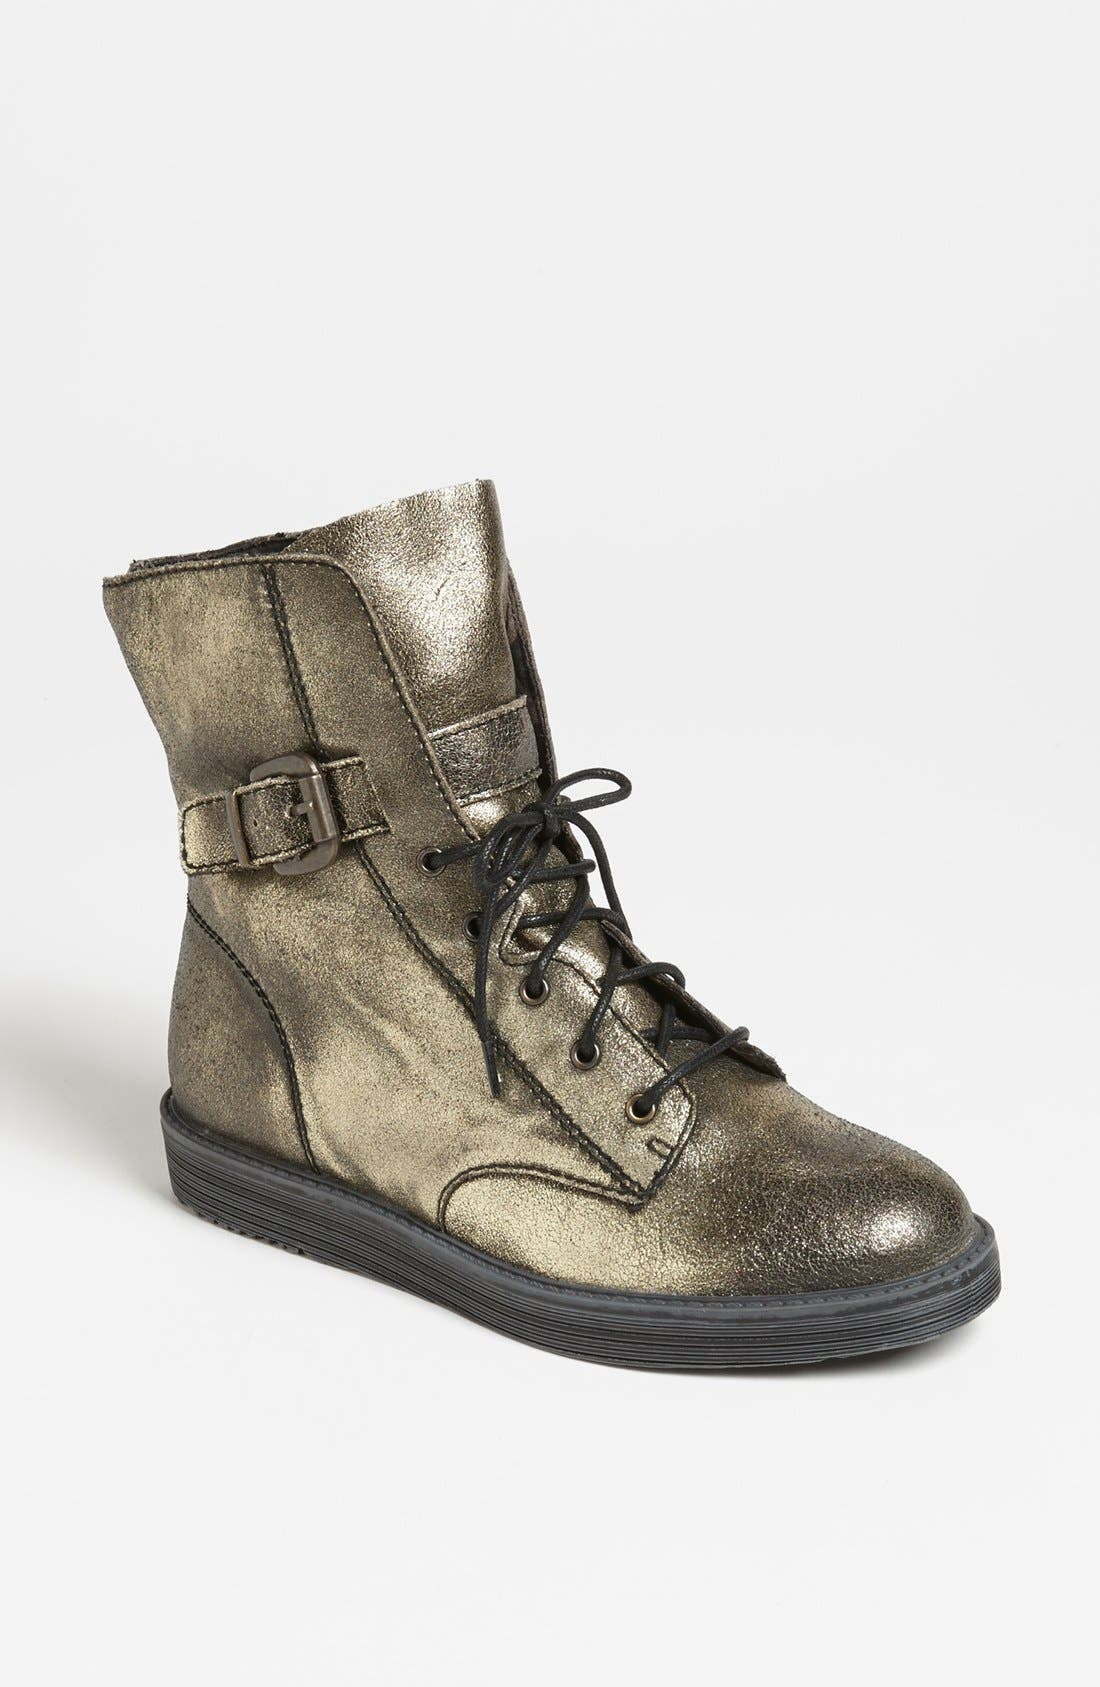 Alternate Image 1 Selected - OTBT 'Brentsville' Boot